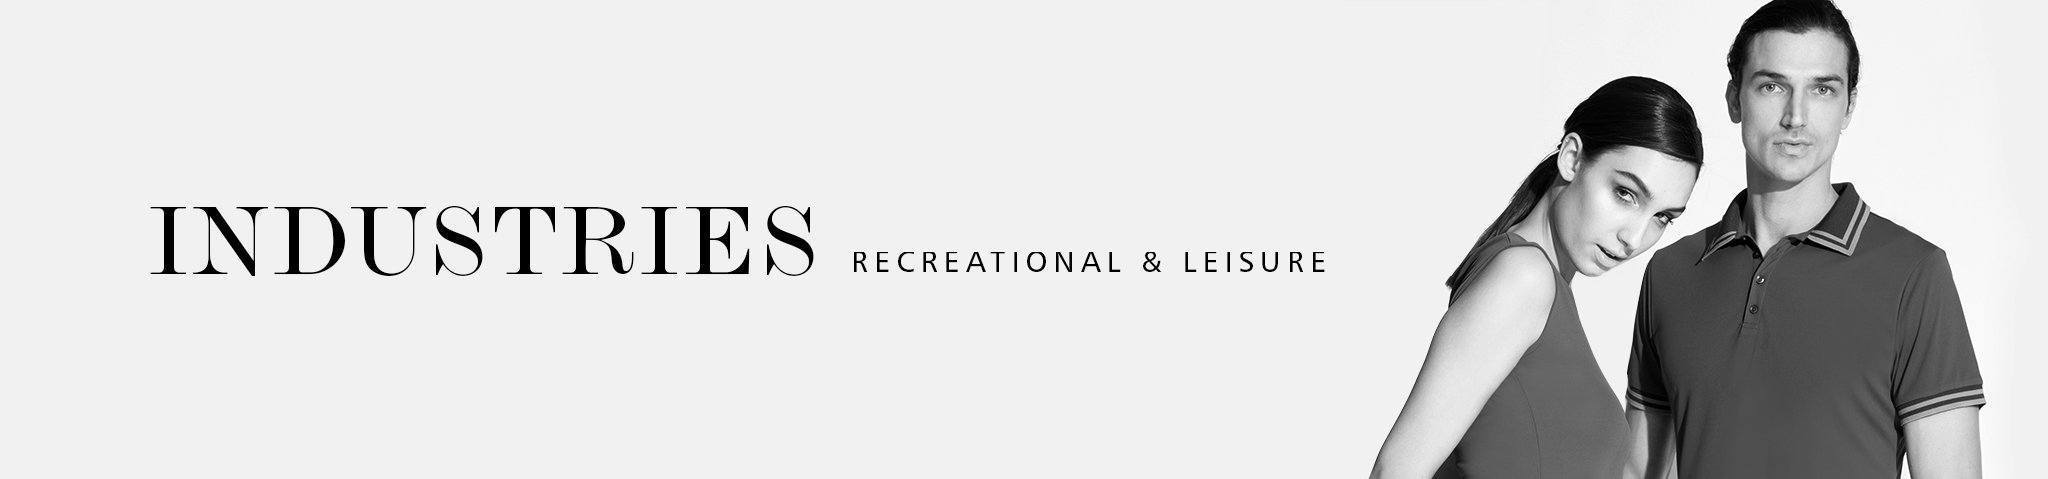 Industries Recreational & Leisure